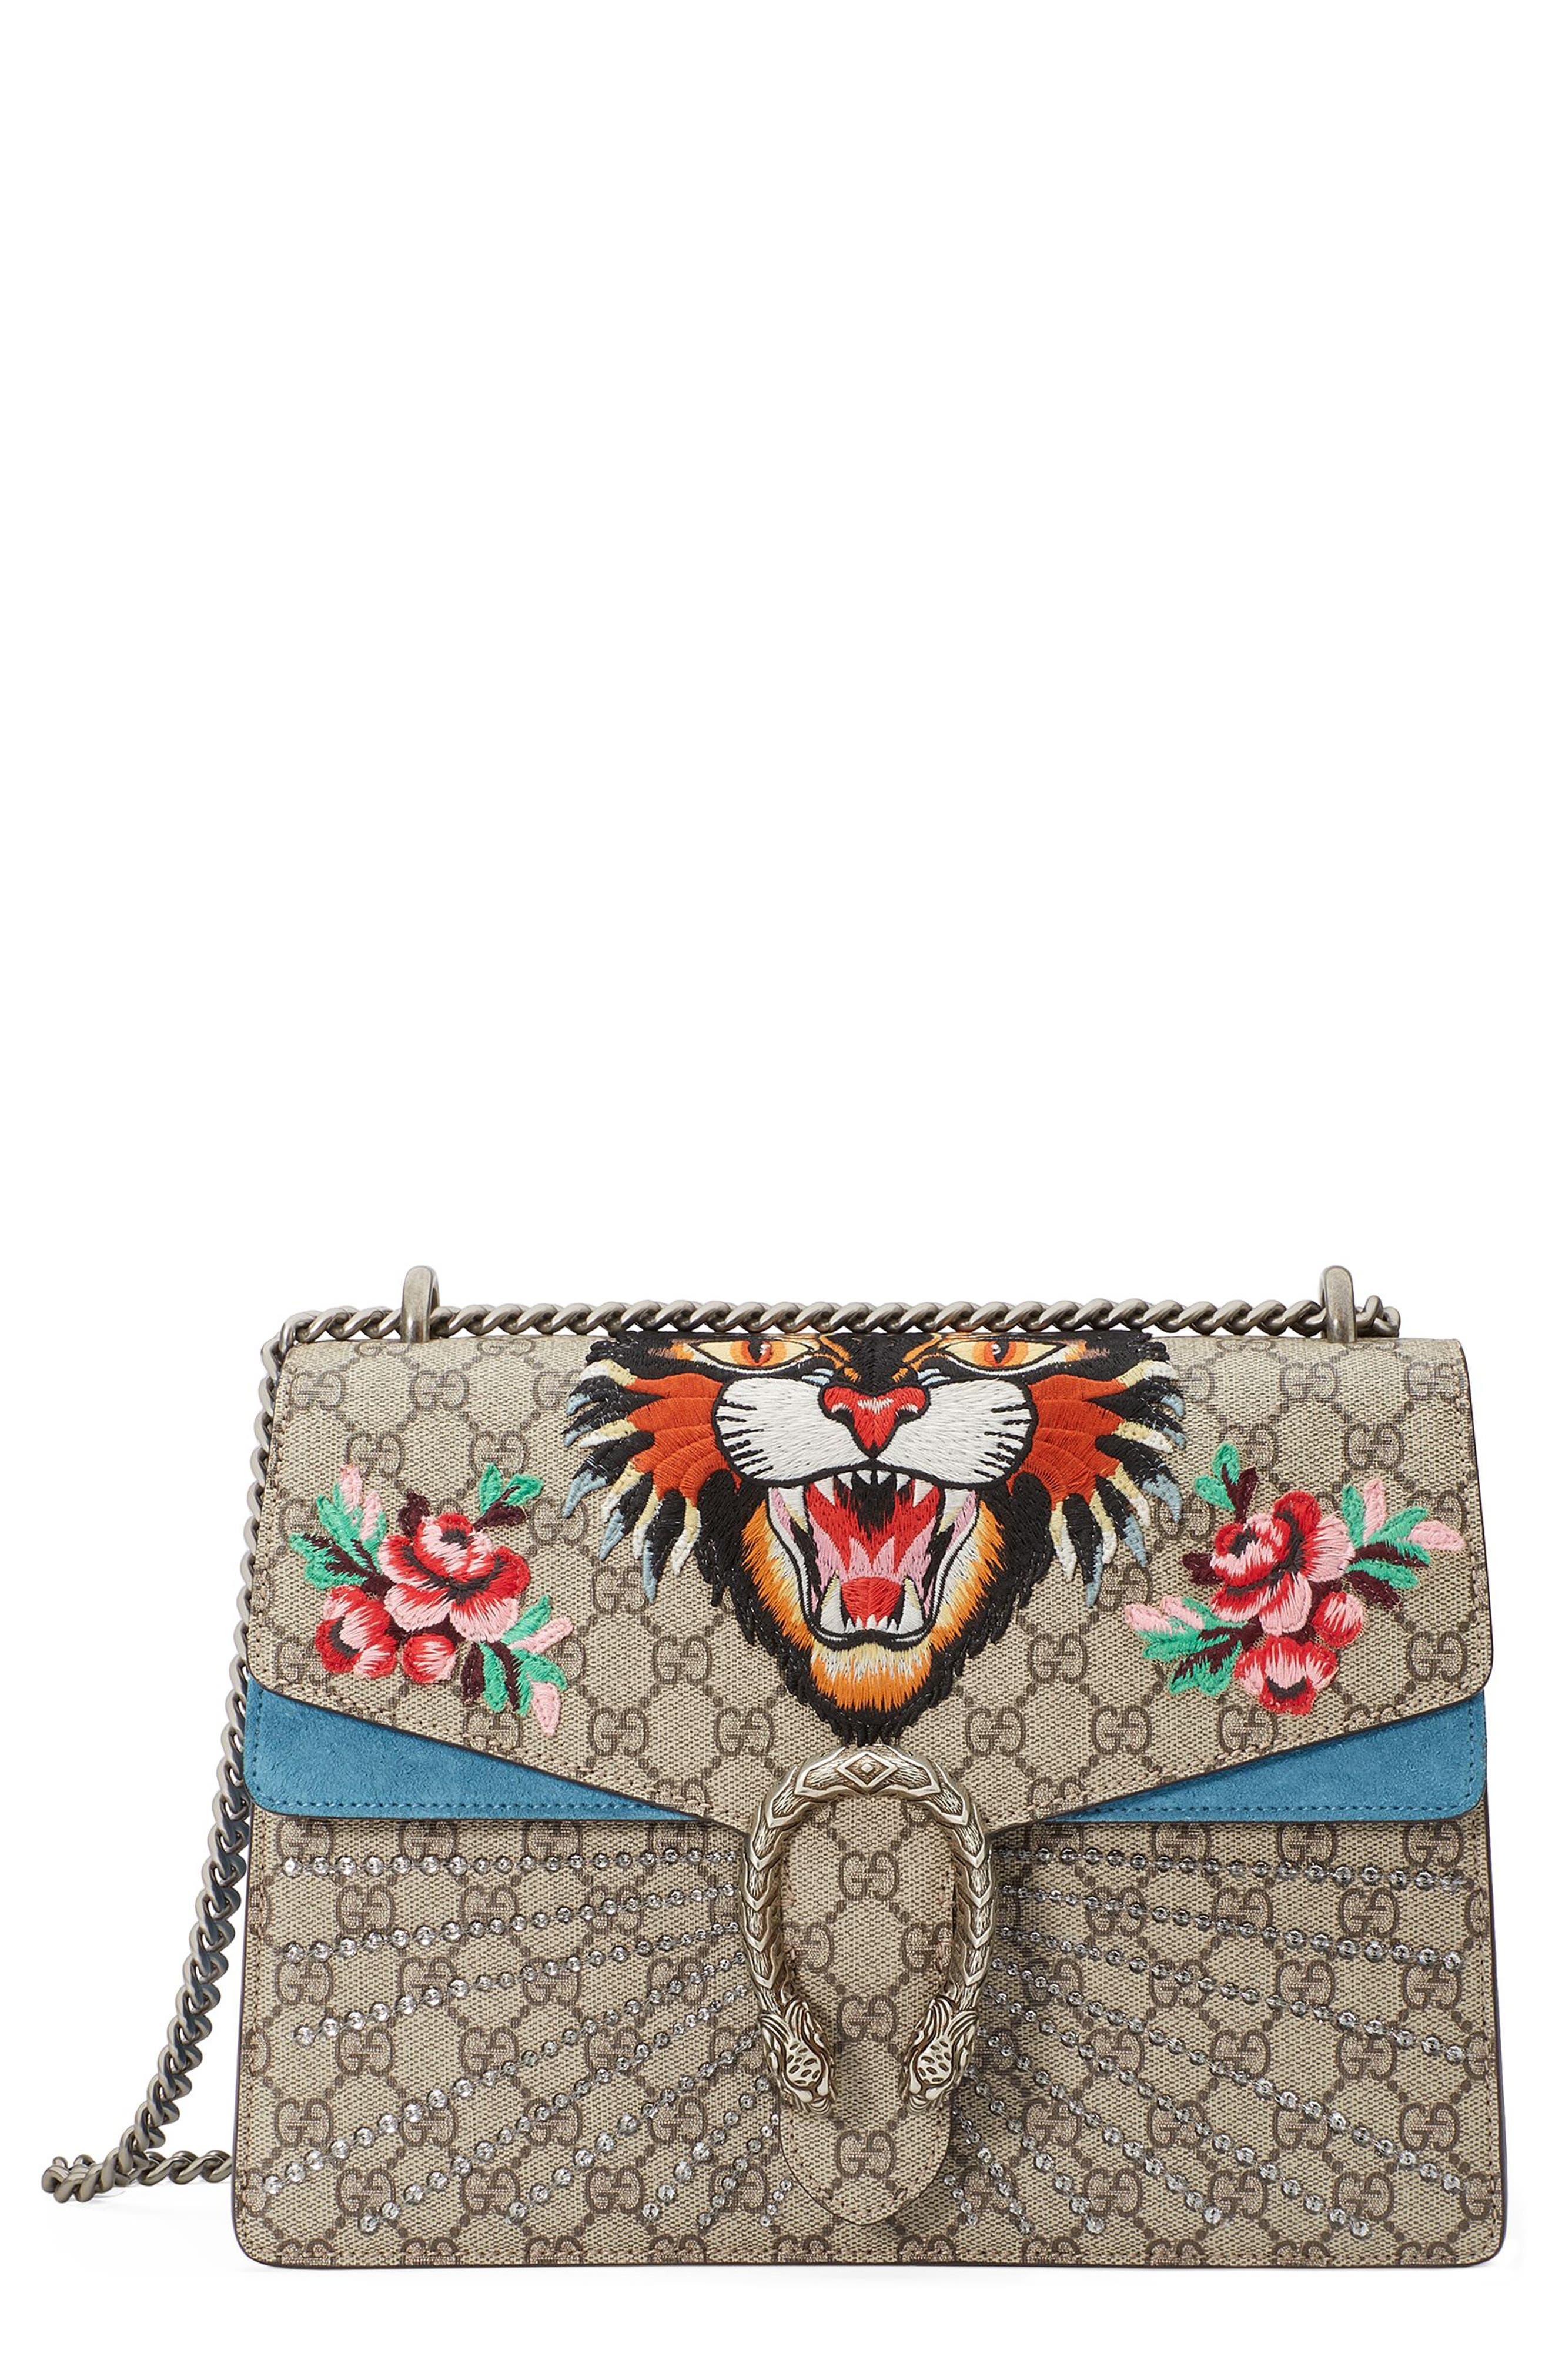 Medium Angry Cat GG Supreme Canvas & Suede Shoulder Bag,                             Main thumbnail 1, color,                             Beige Ebony/Ultramarine